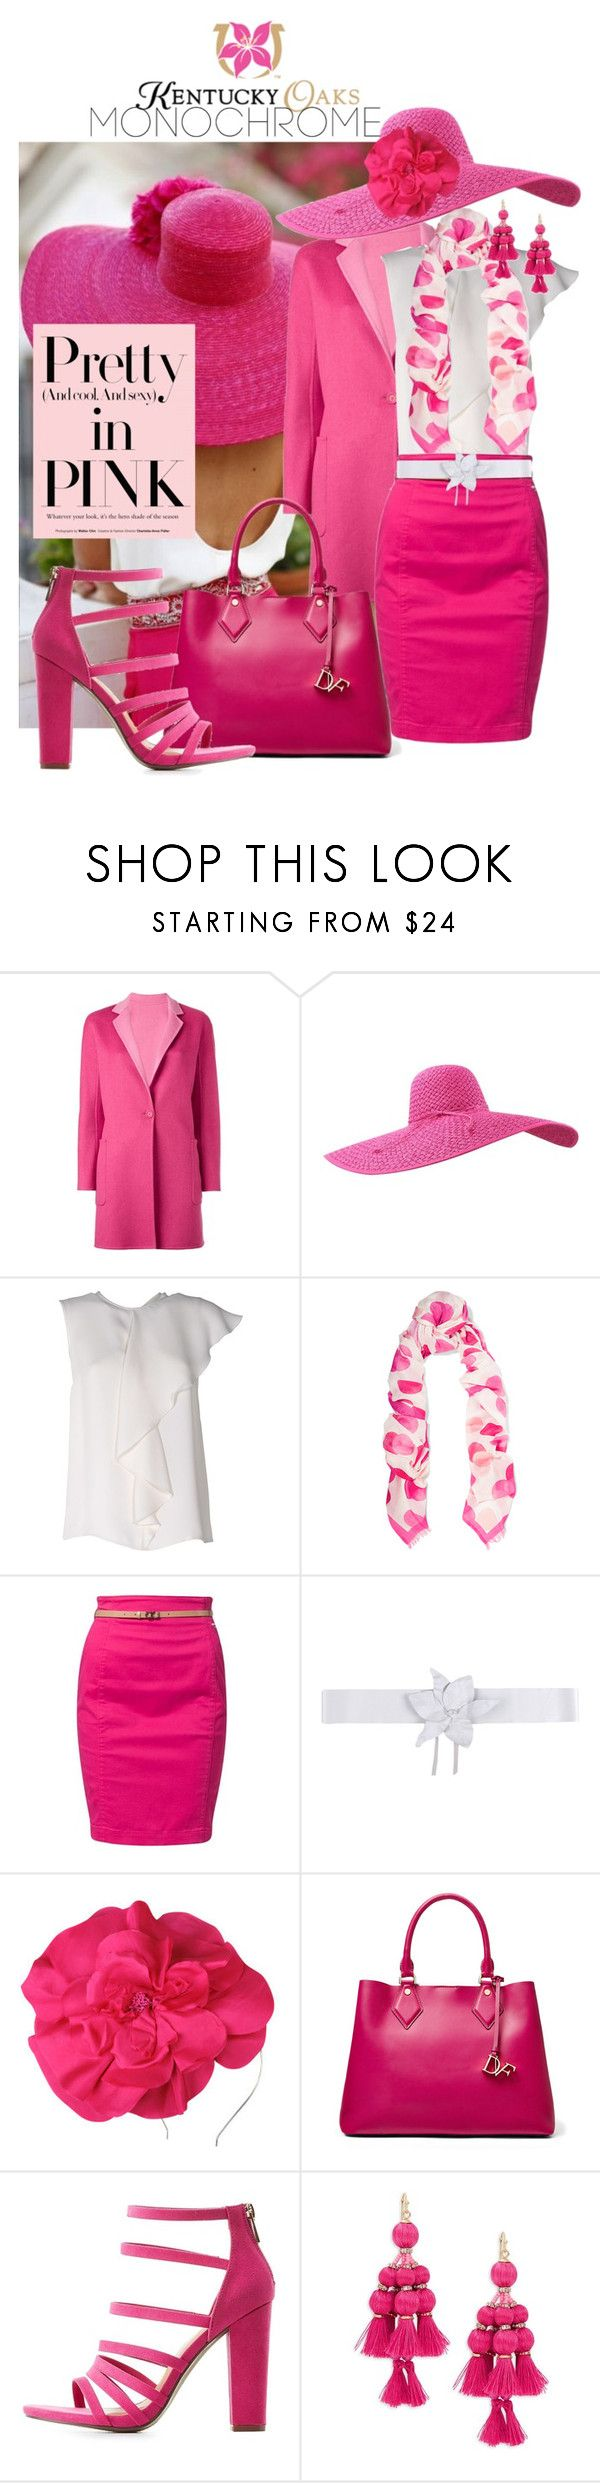 """""""So pretty in pink.. Kentucky Oaks"""" by mia-christine ❤ liked on Polyvore featuring MaxMara, STELLA McCARTNEY, Calvin Klein Jeans, Space Style Concept, Morgan & Taylor, Diane Von Furstenberg, Bamboo, Kate Spade and monochromepink"""